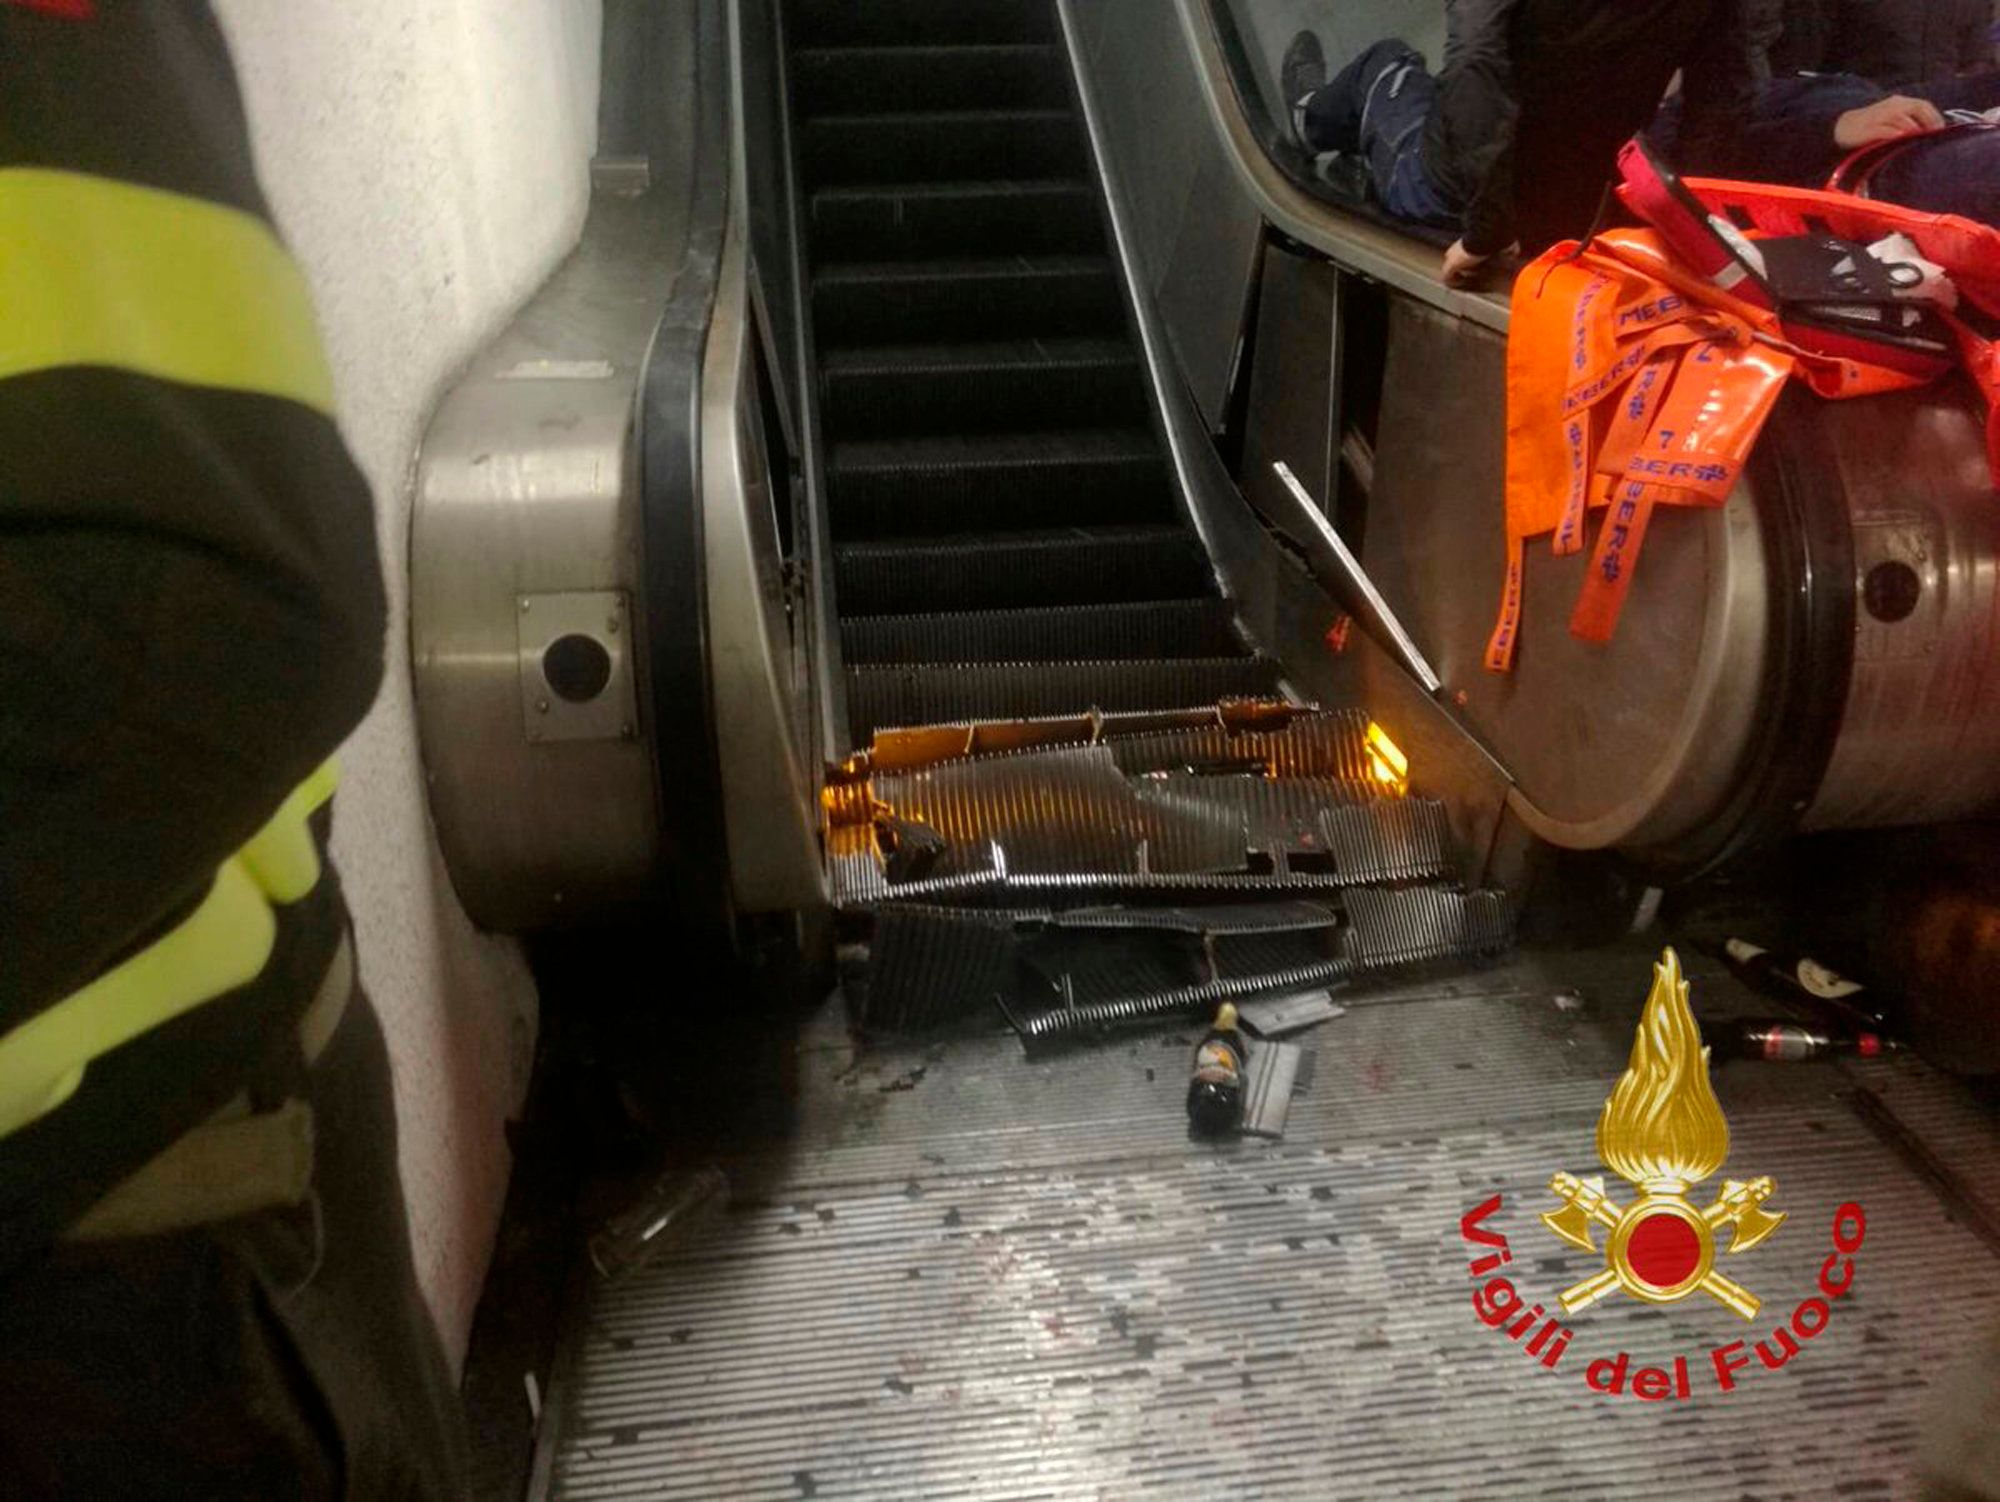 Terrifying Video Shows Out-Of-Control Escalator That Injured At Least 20